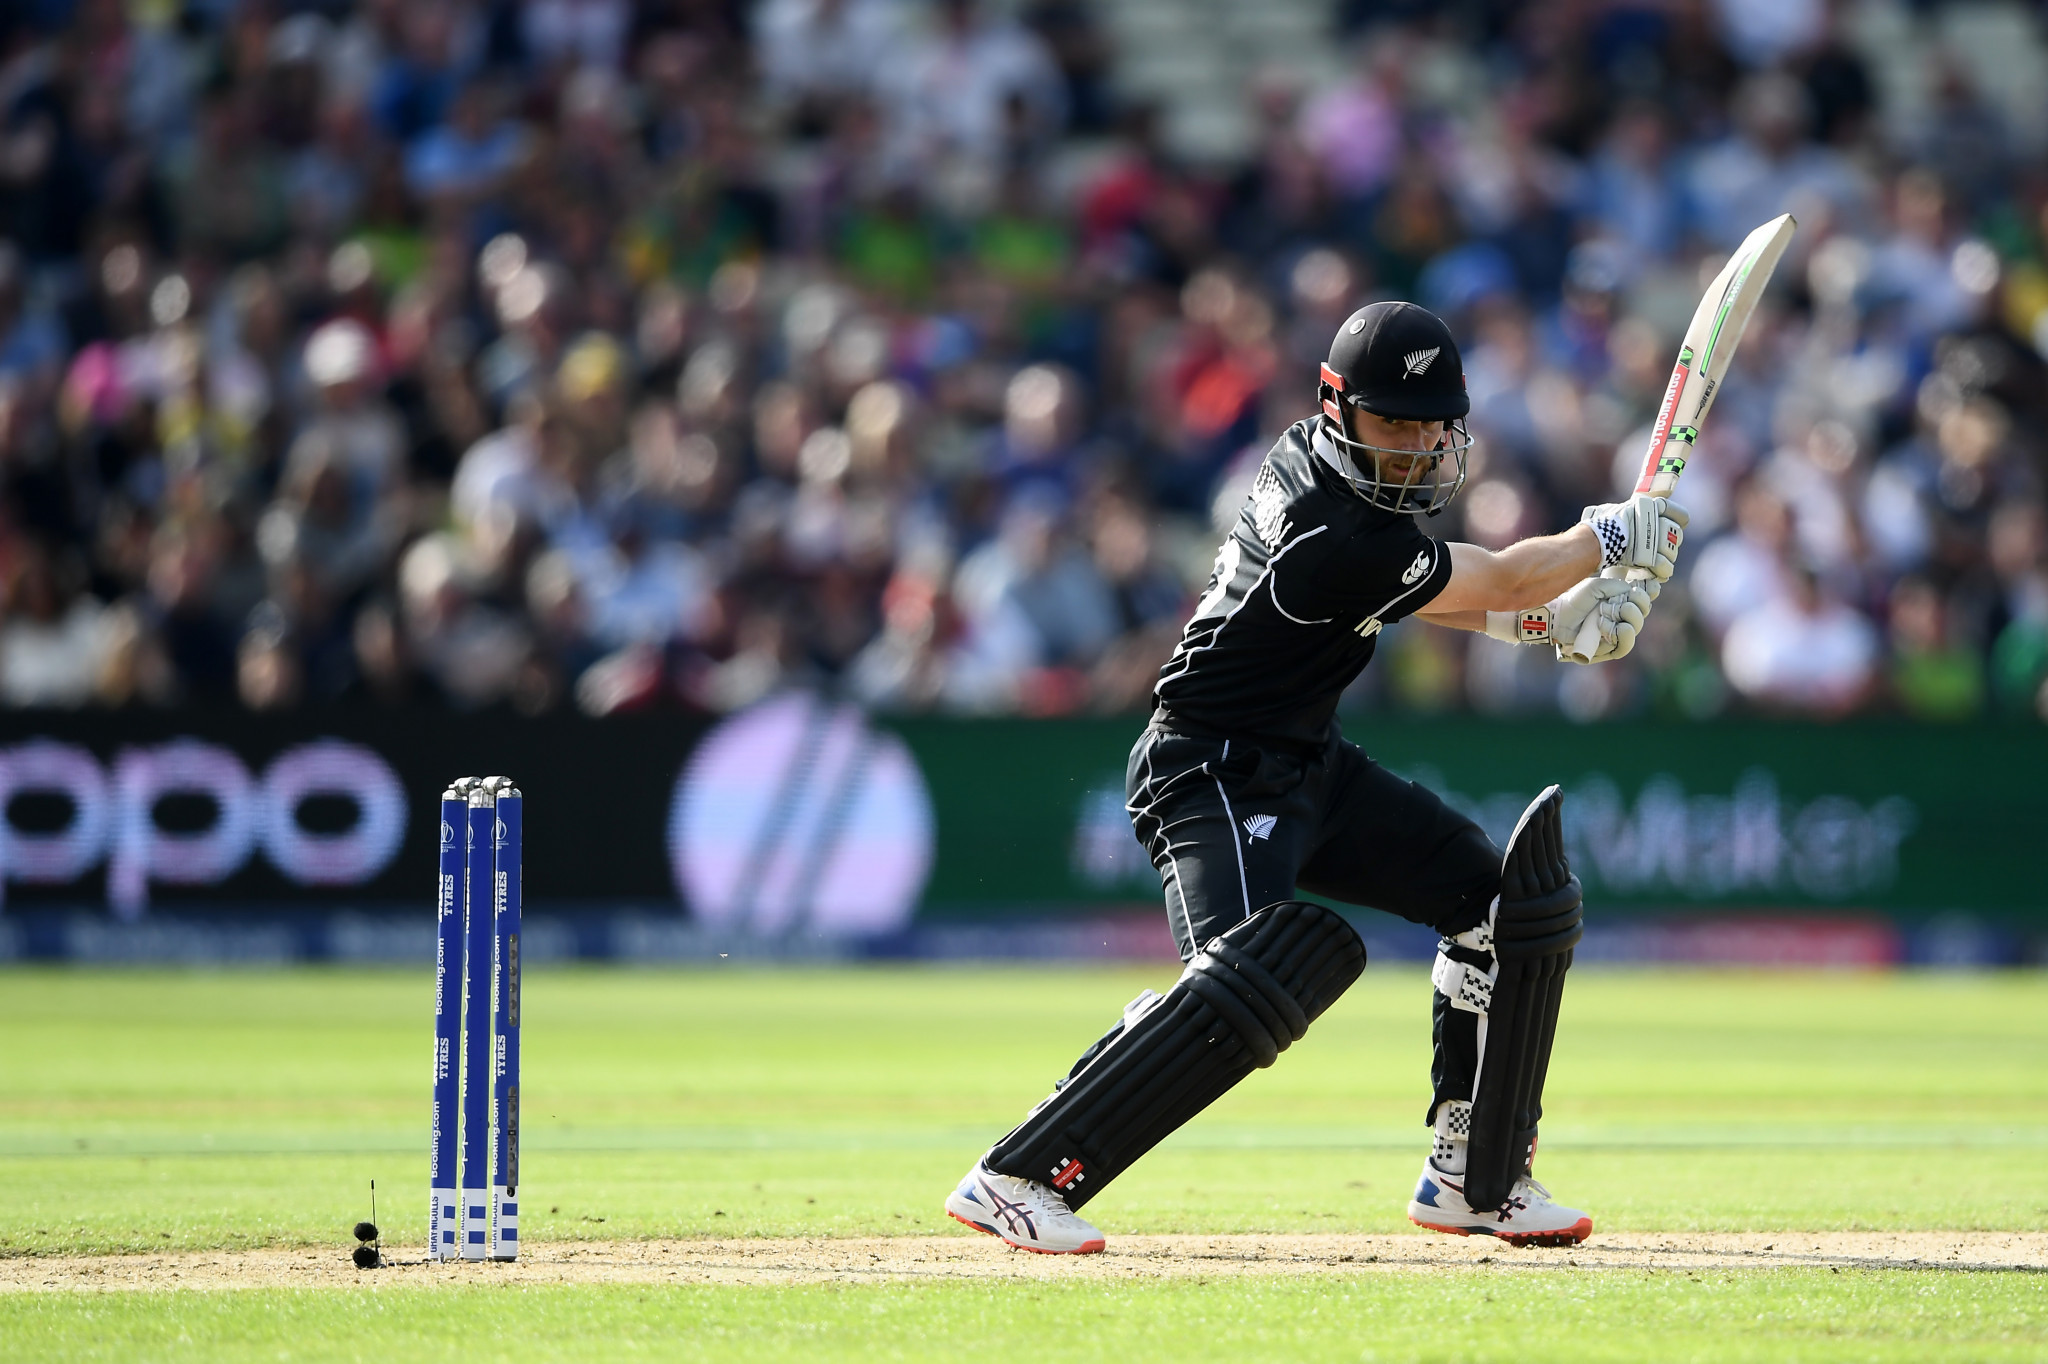 New Zealand captain Kane Williamson steered his side to a tense four-wicket victory over South Africa at the ICC Men's World Cup today ©Getty Images